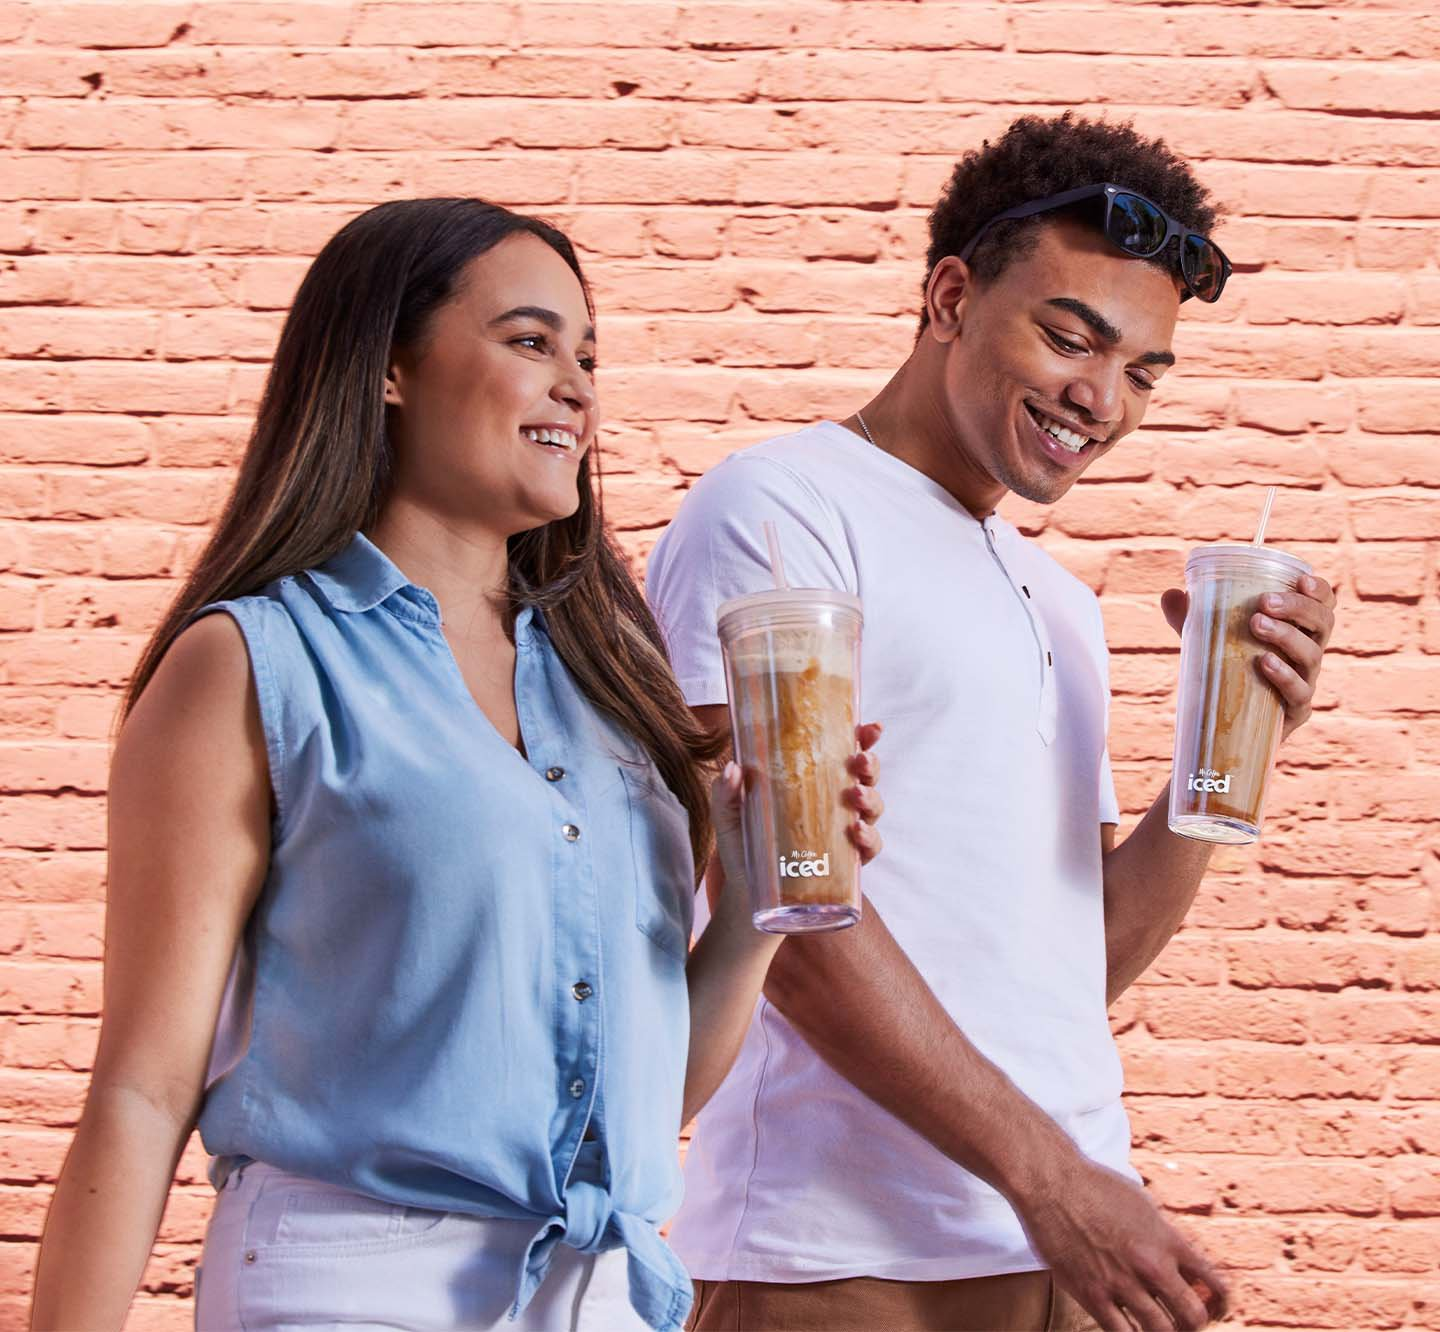 Two people with iced coffee